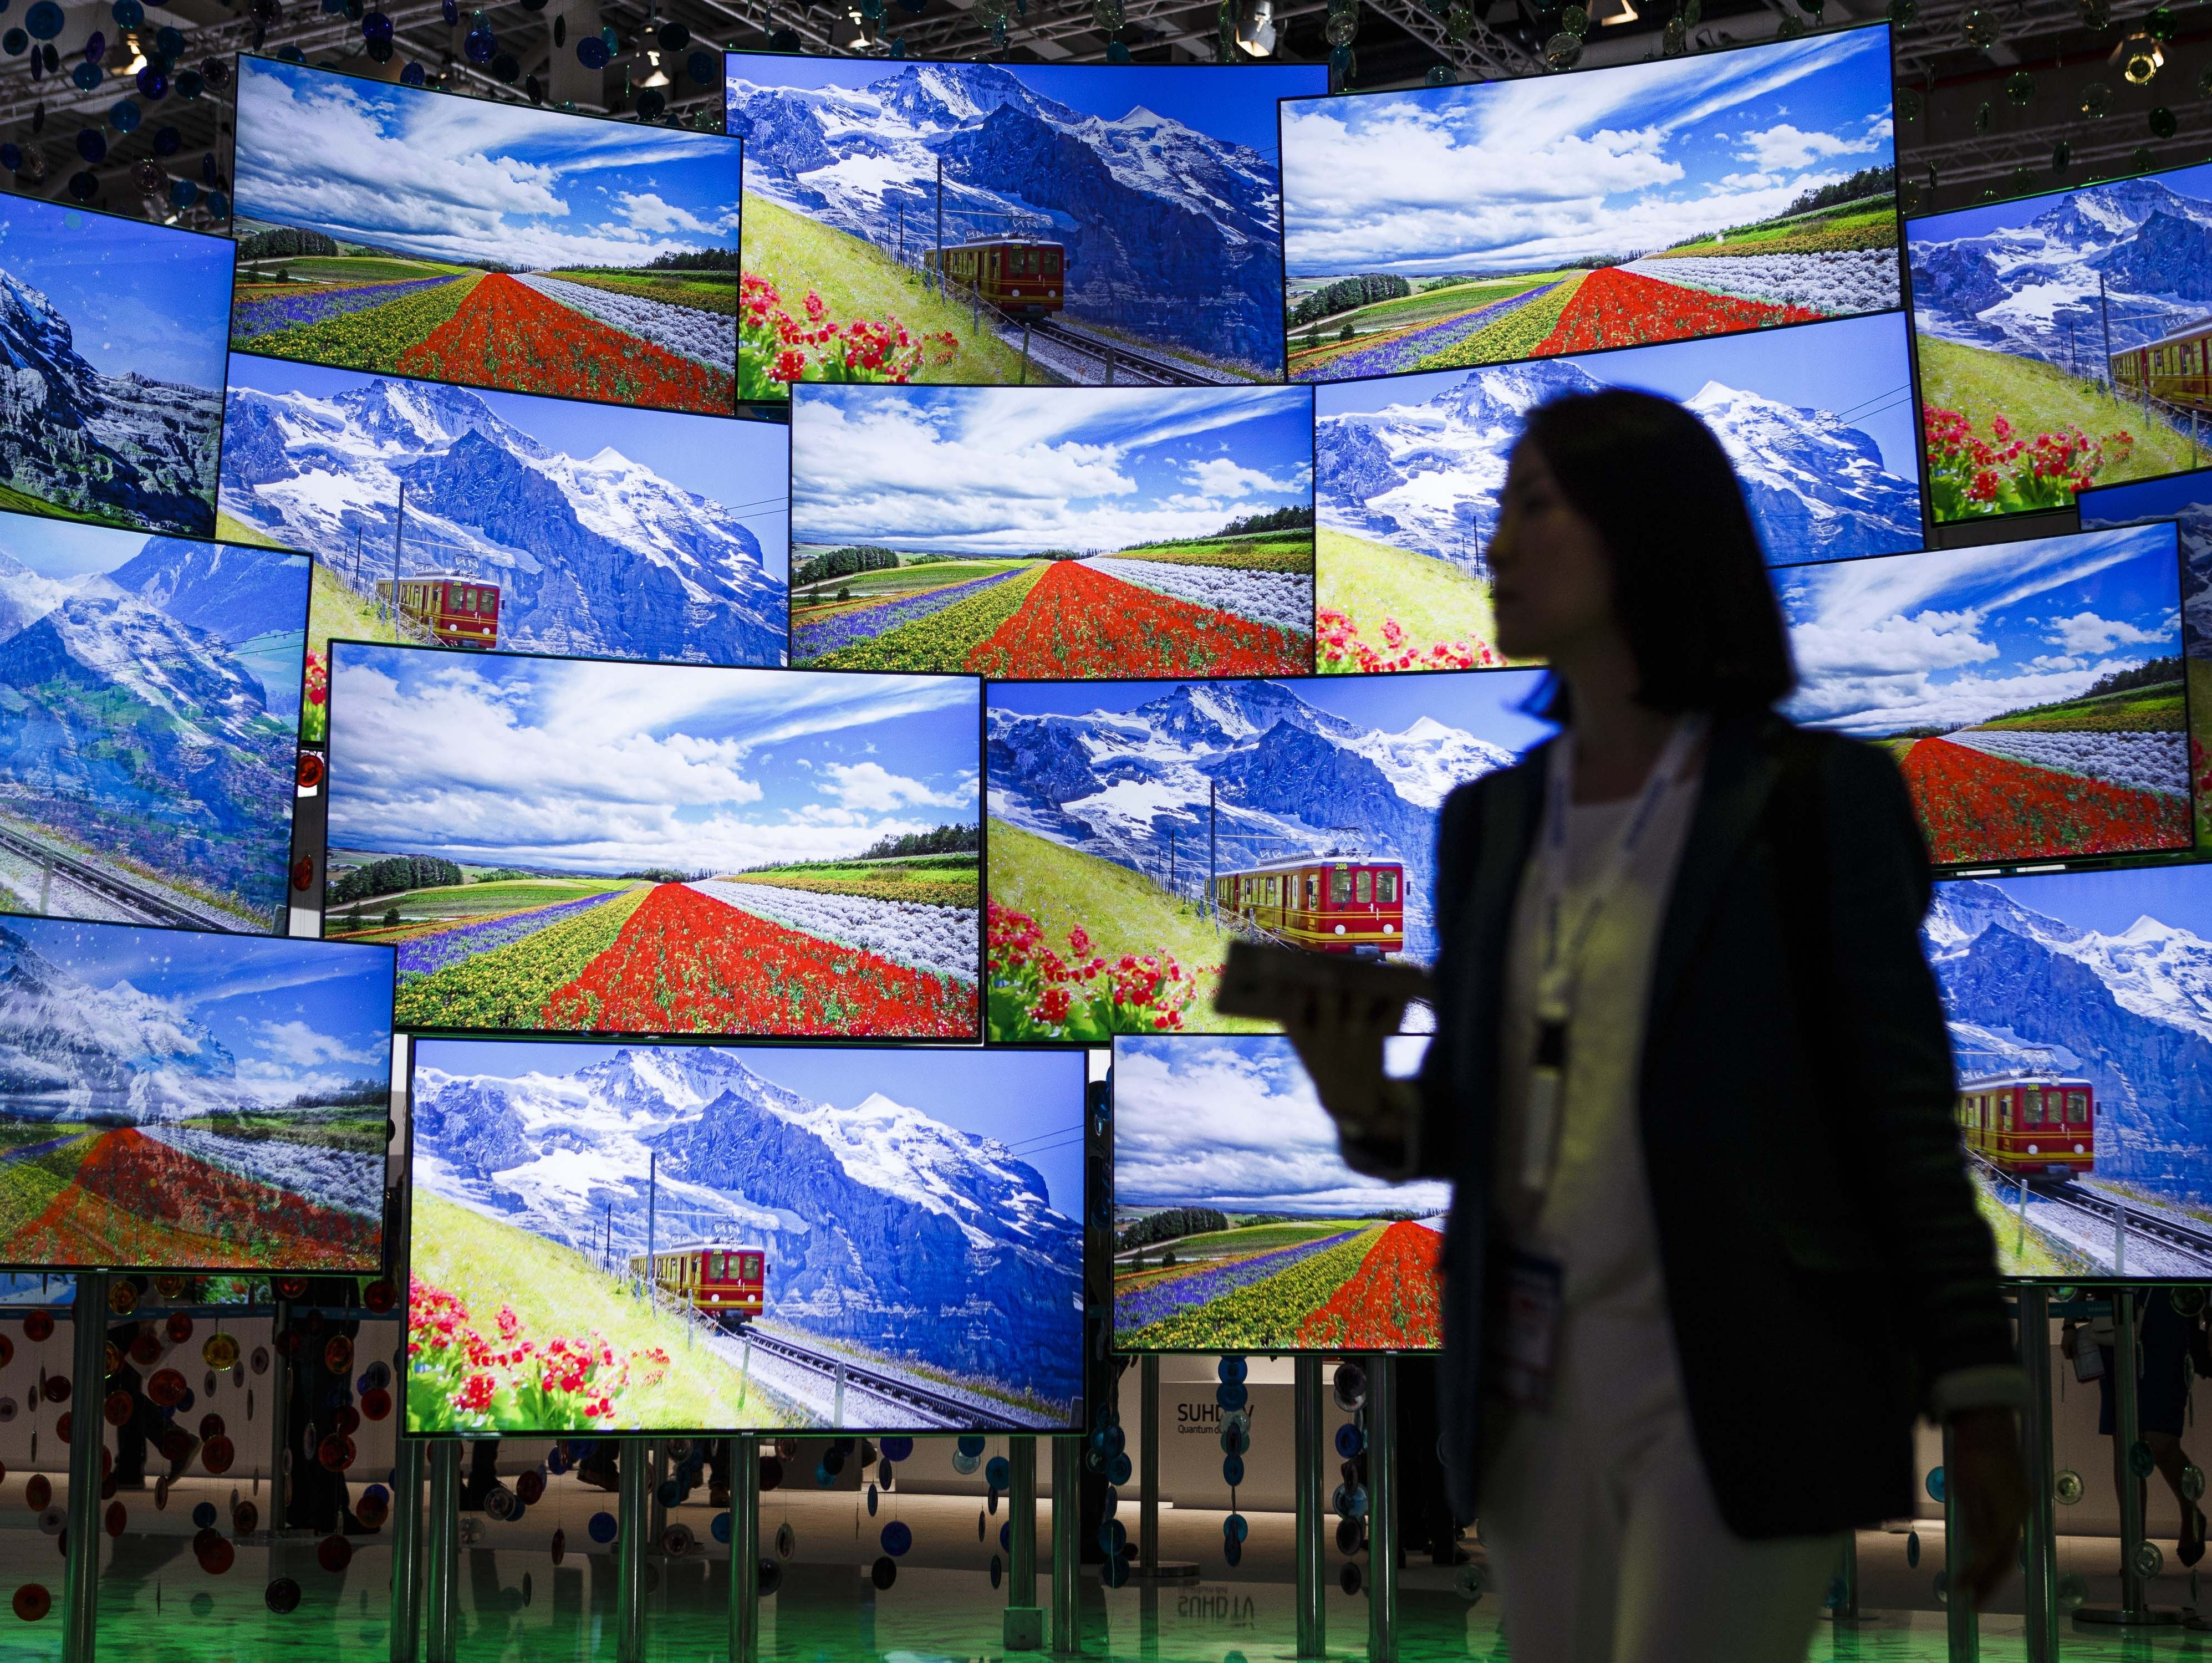 A visitor passes the display wall from Samsung at the 2016 IFA consumer electronics trade fair in Berlin, Germany.